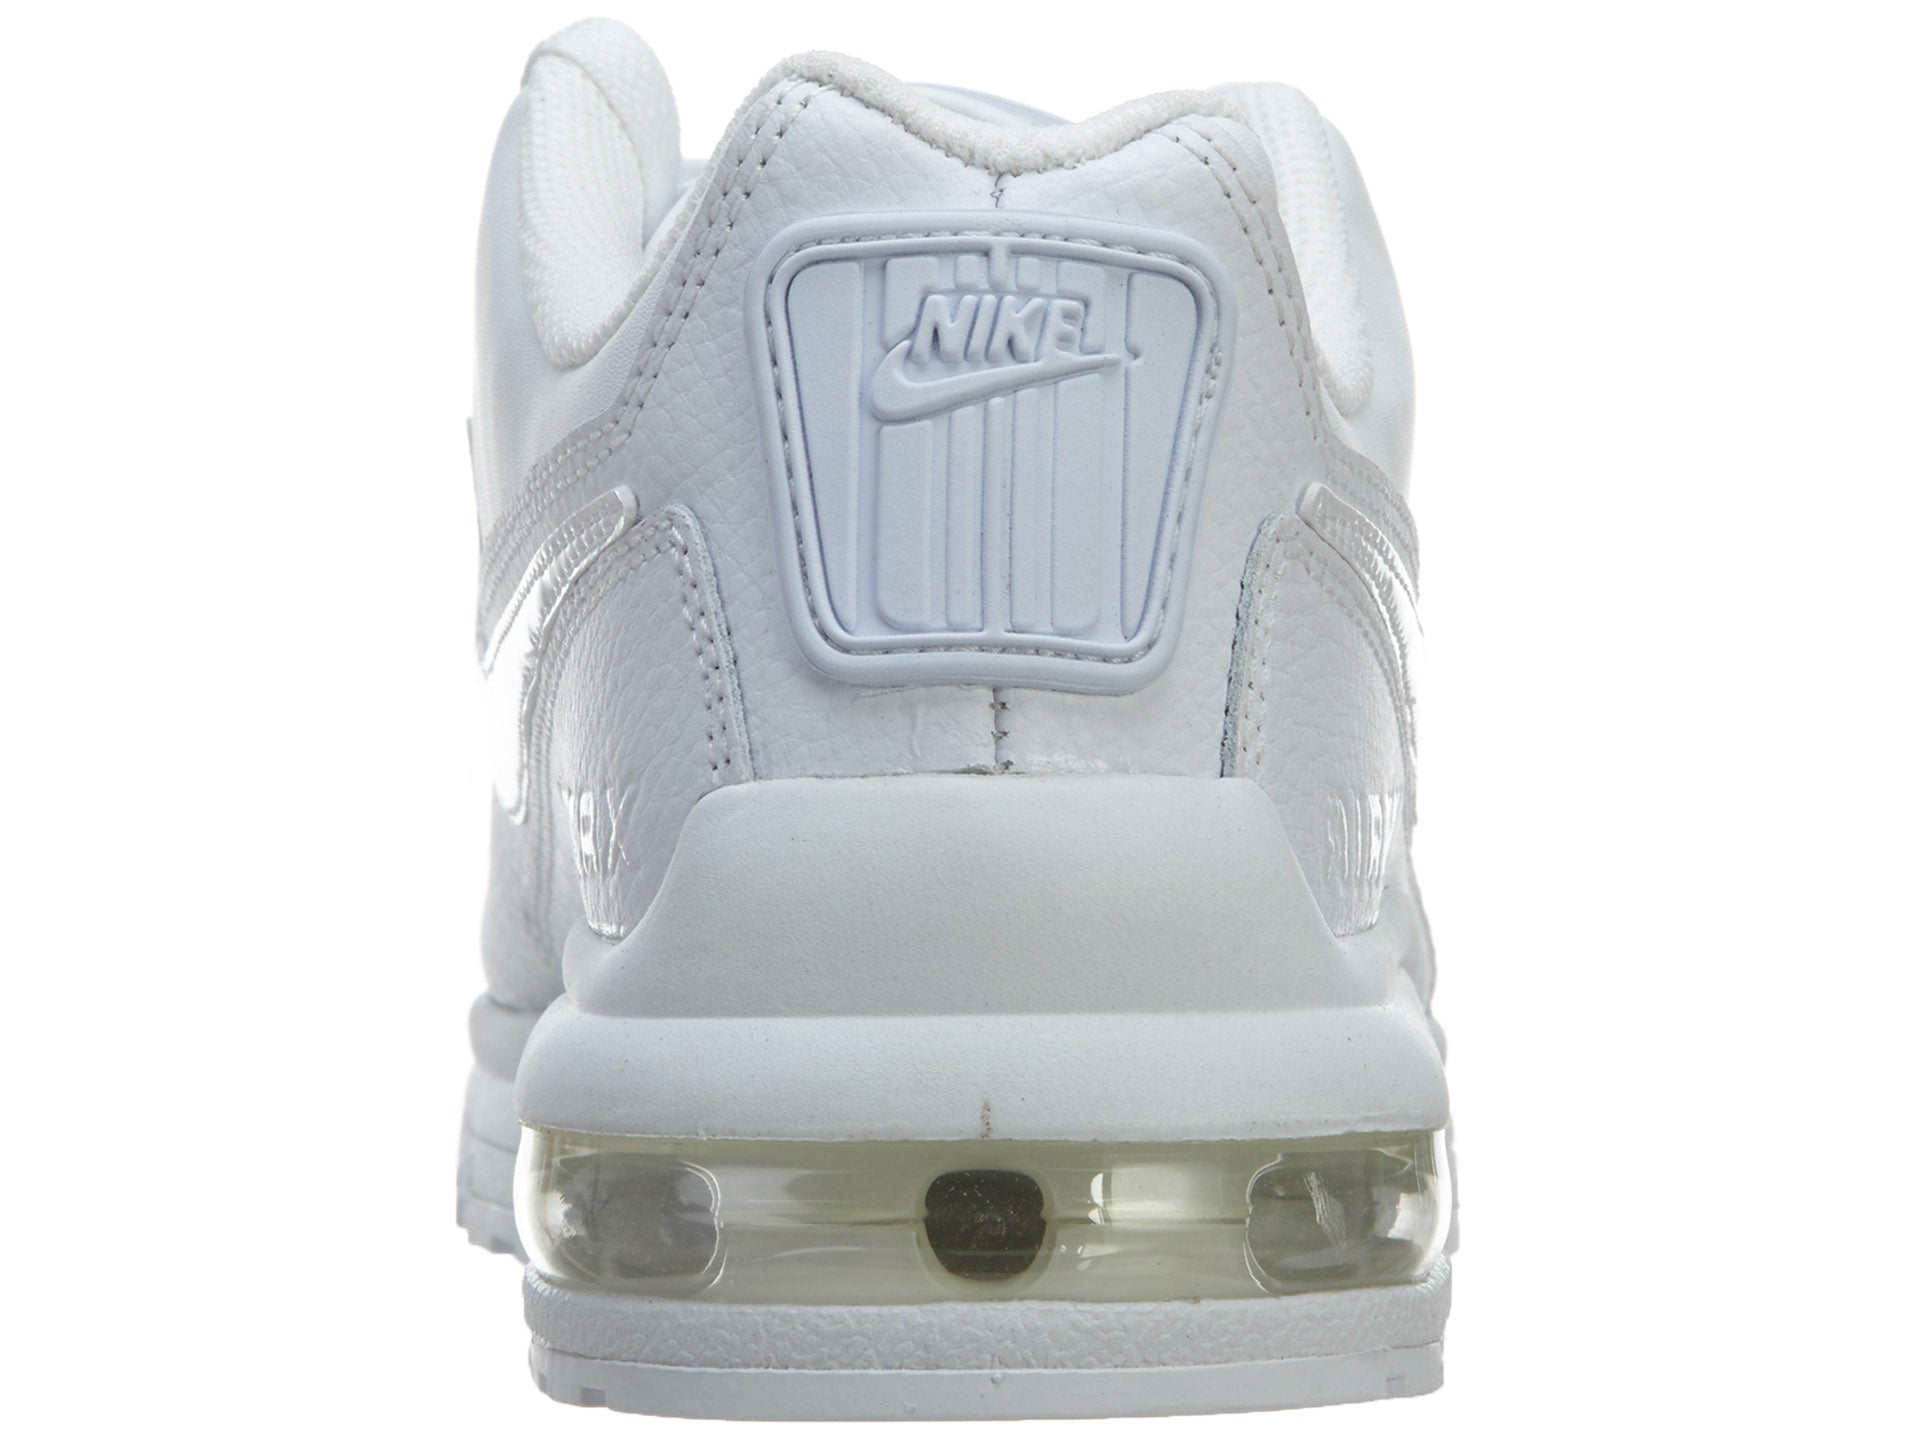 698722e479 Nike Air Max Ltd 3 Mens Style : 687977. NIKE / Athletic Shoes & Sneakers